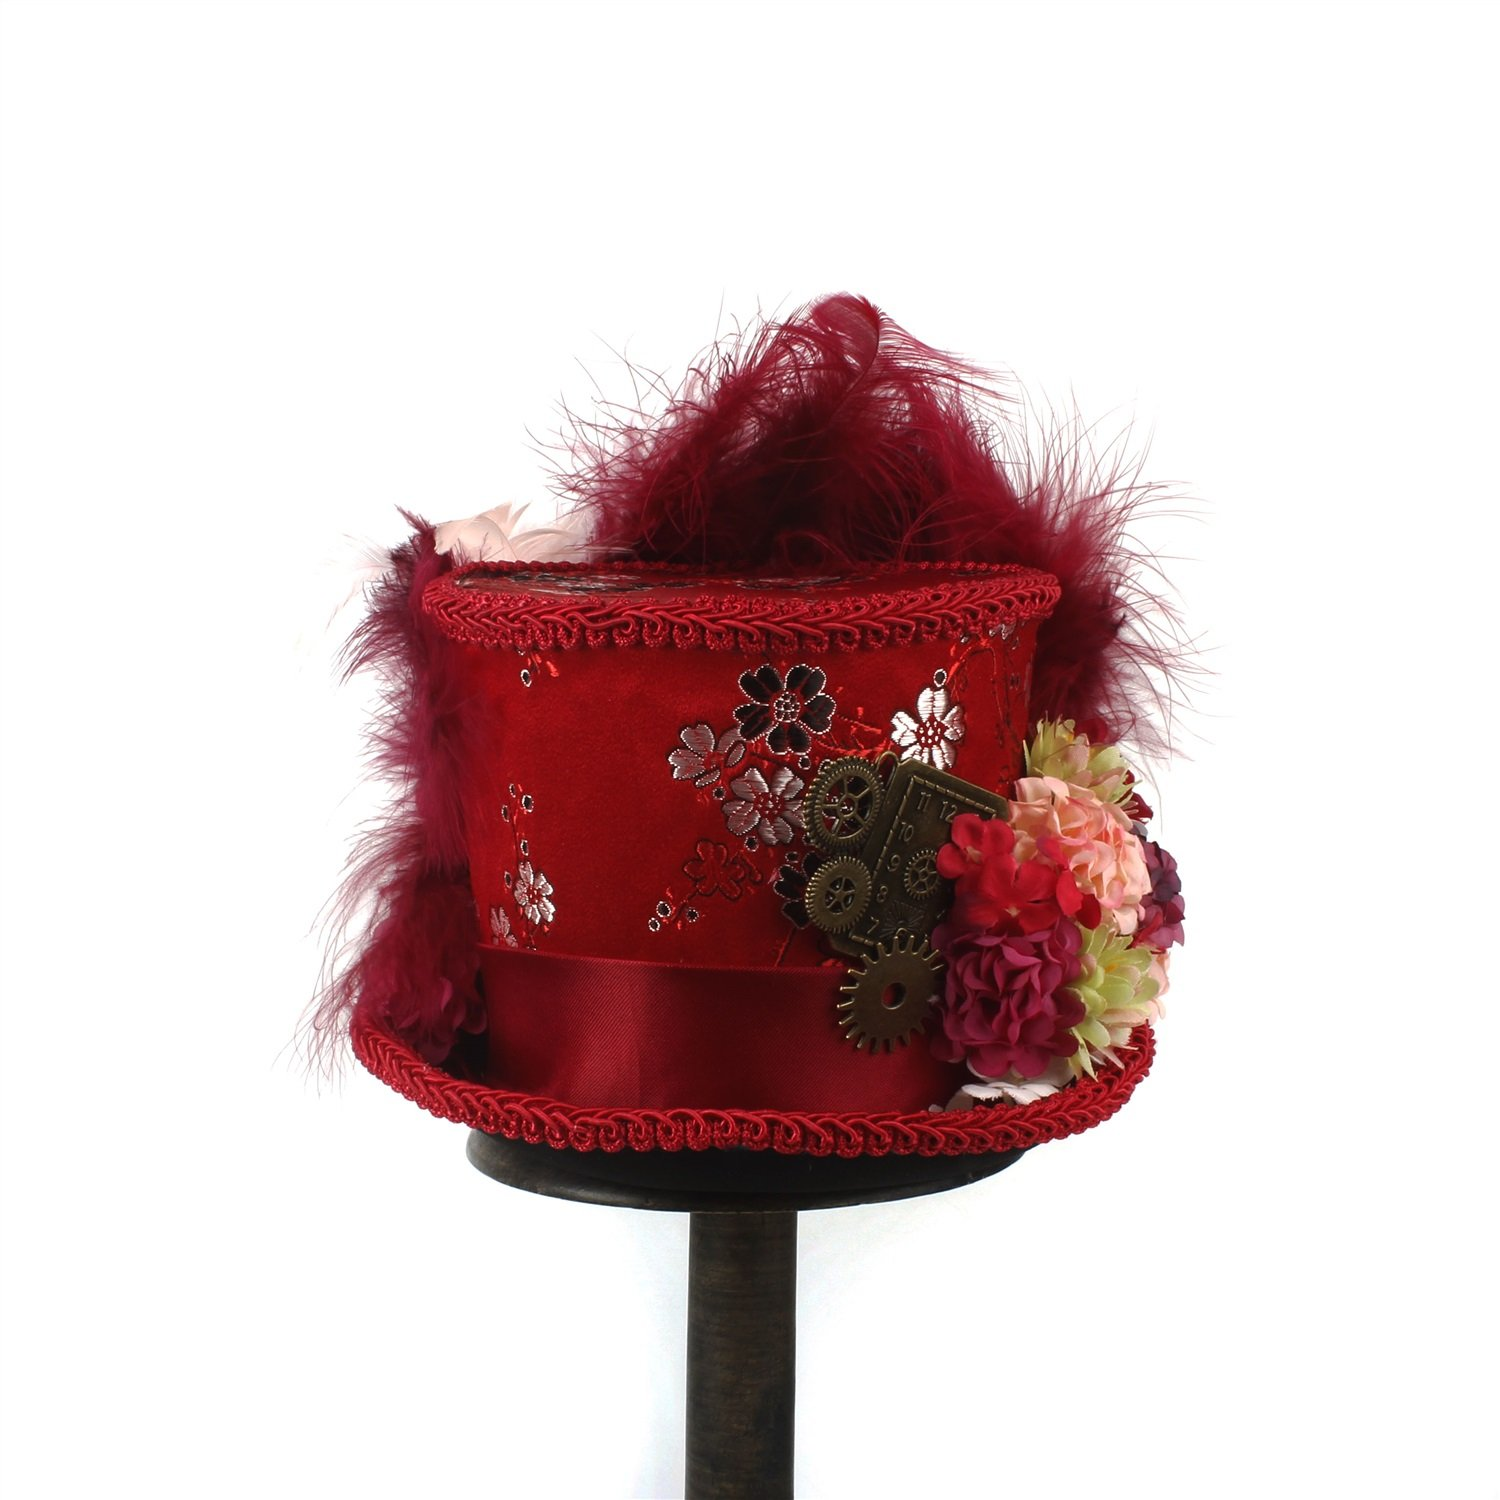 LL Women;s Red Mini Top Hat, Antique Red and Ivory Tea Cup Hat Mad Hatter Hat, Tea Hat,Mad Hatter Tea Party (Color : Red, Size : 25-30cm) by LL (Image #5)